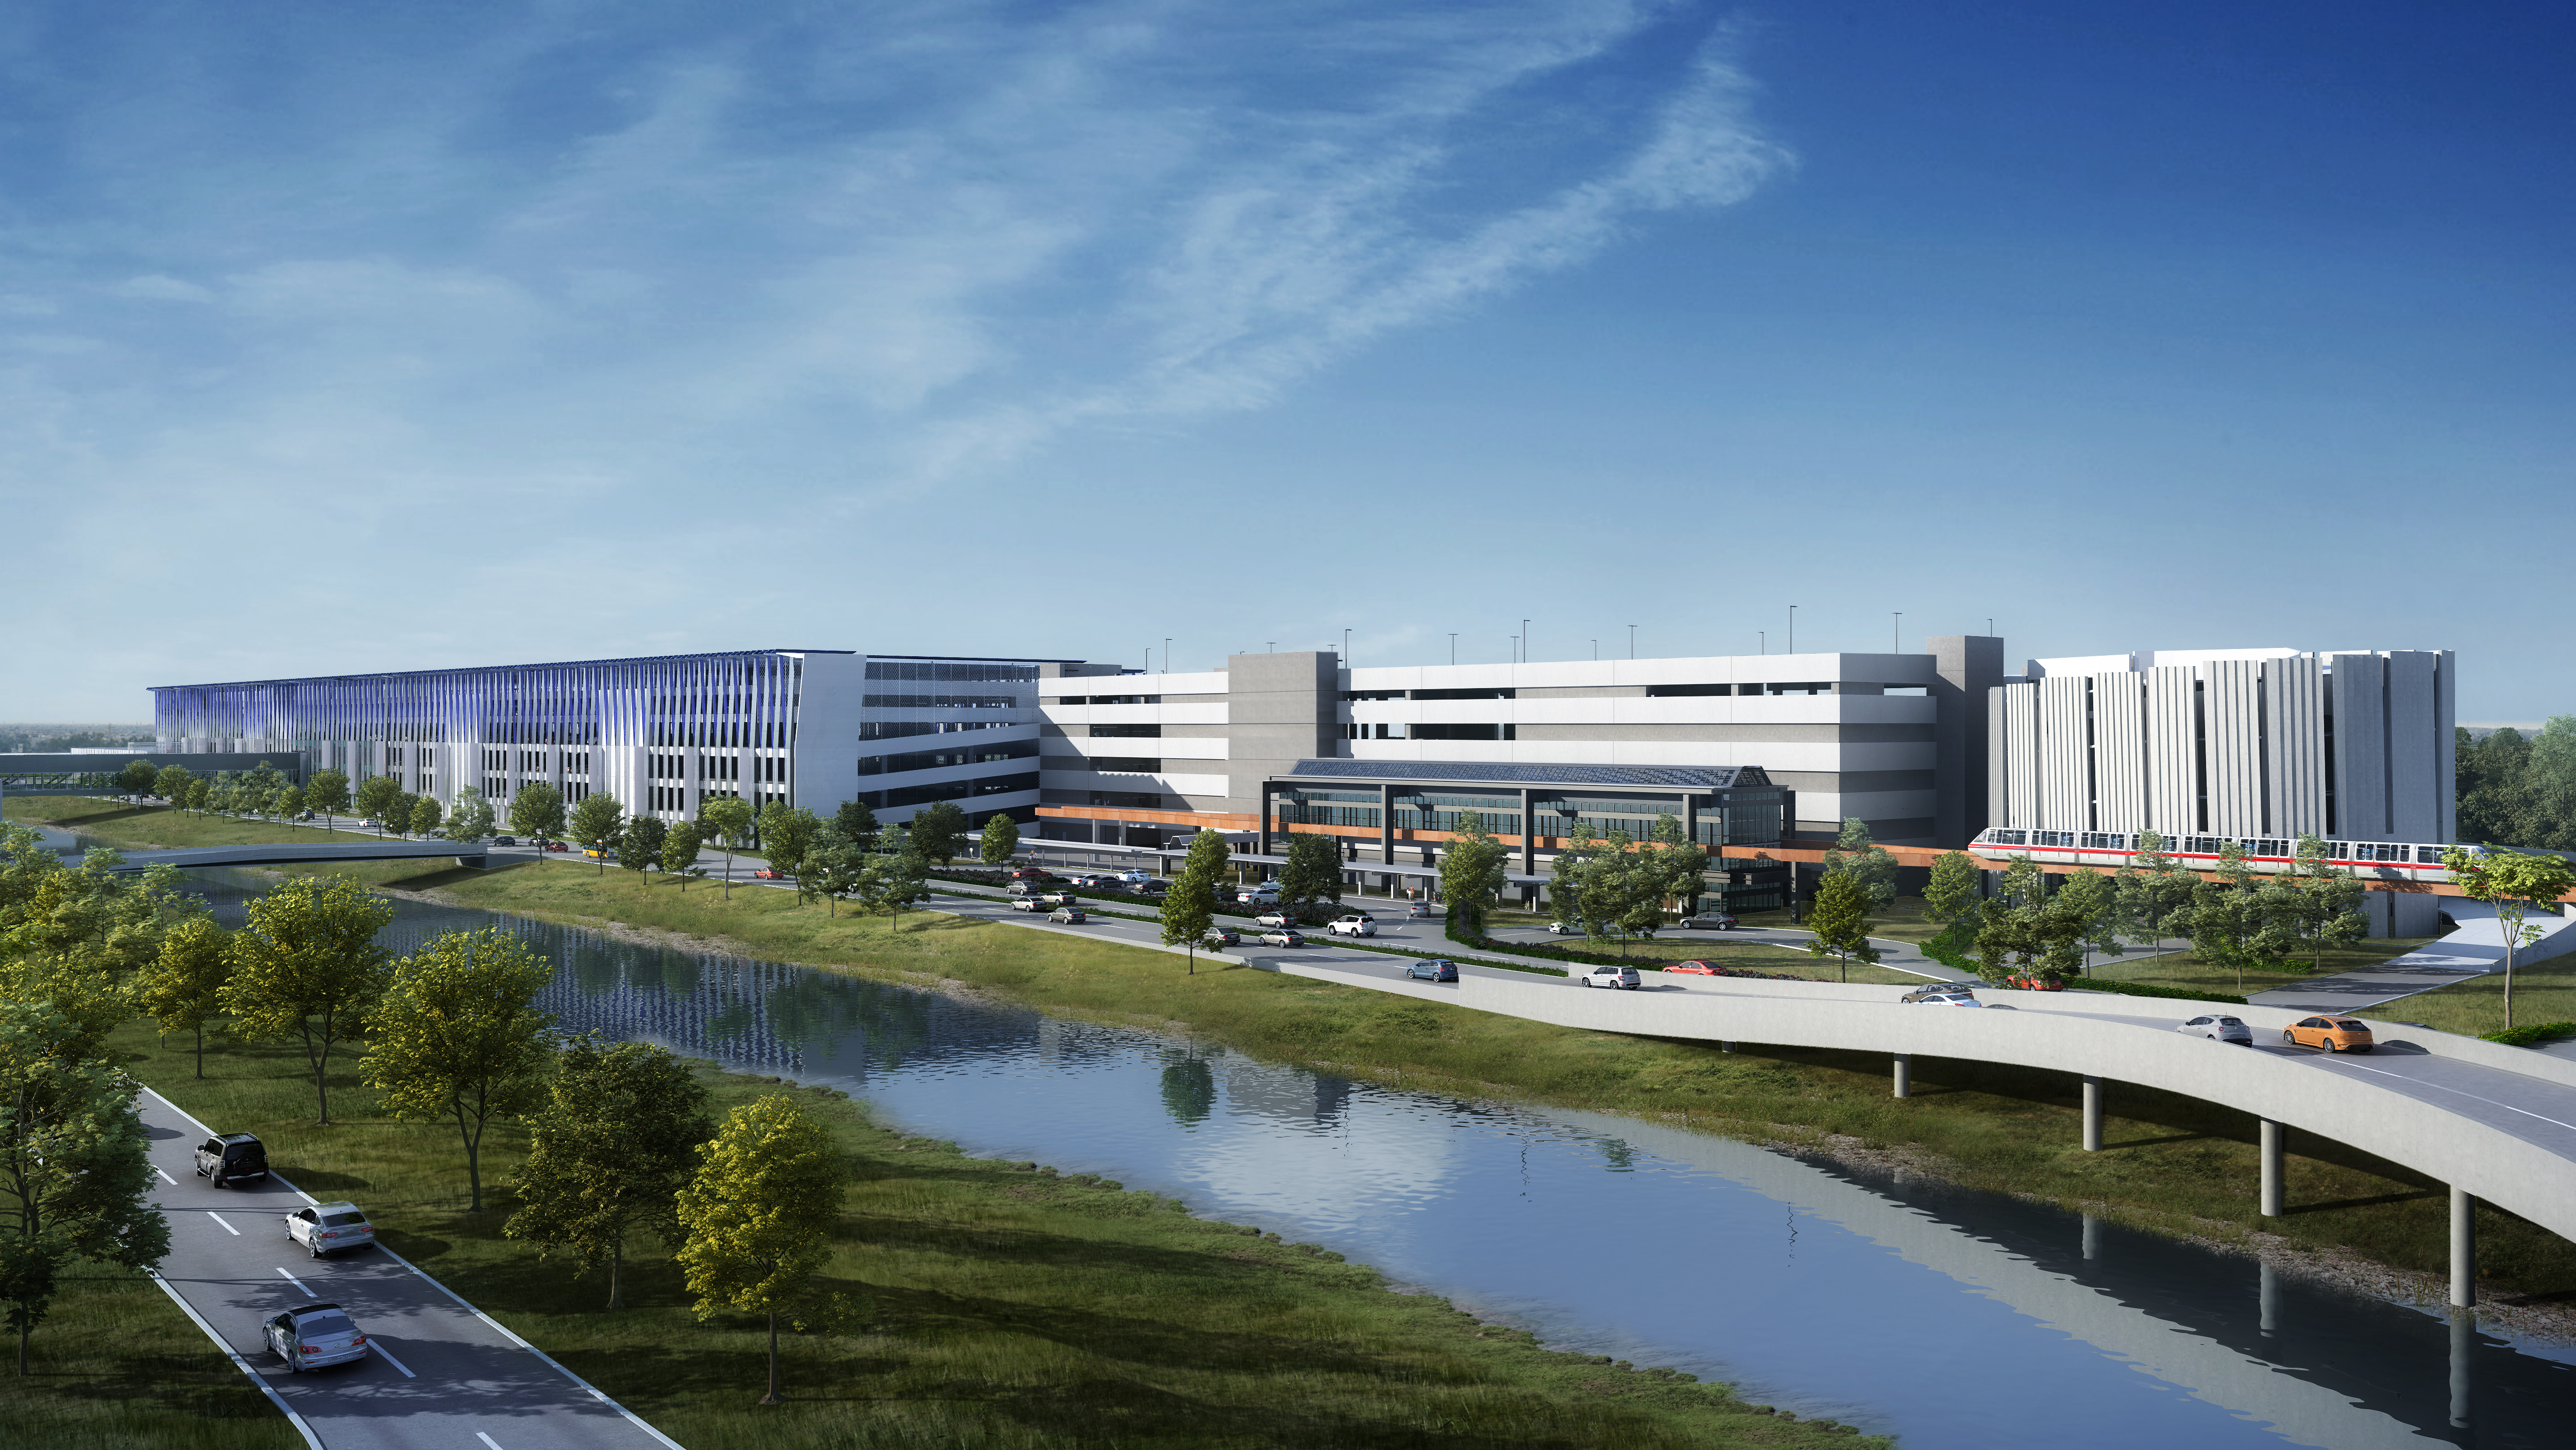 The 2.7 million-square-foot development brings all 10 rental brands at Newark under one roof, conveniently located adjacent to the Terminal One Redevelopment Project. - Photo courtesy of Conrac Solutions.